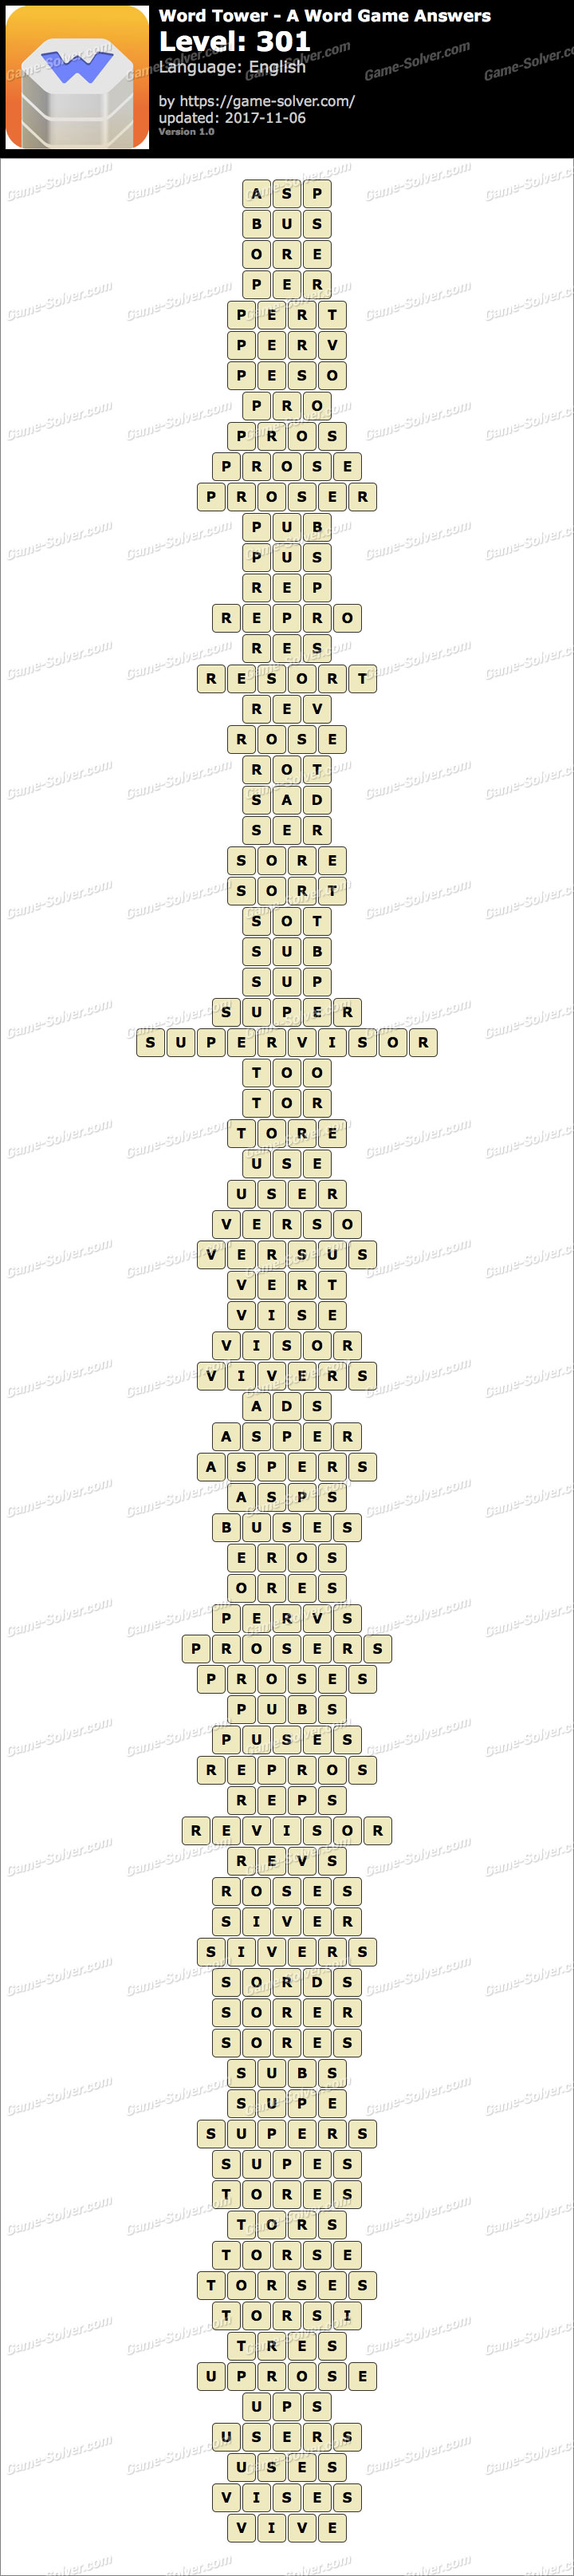 Word Tower Level 301 Answers